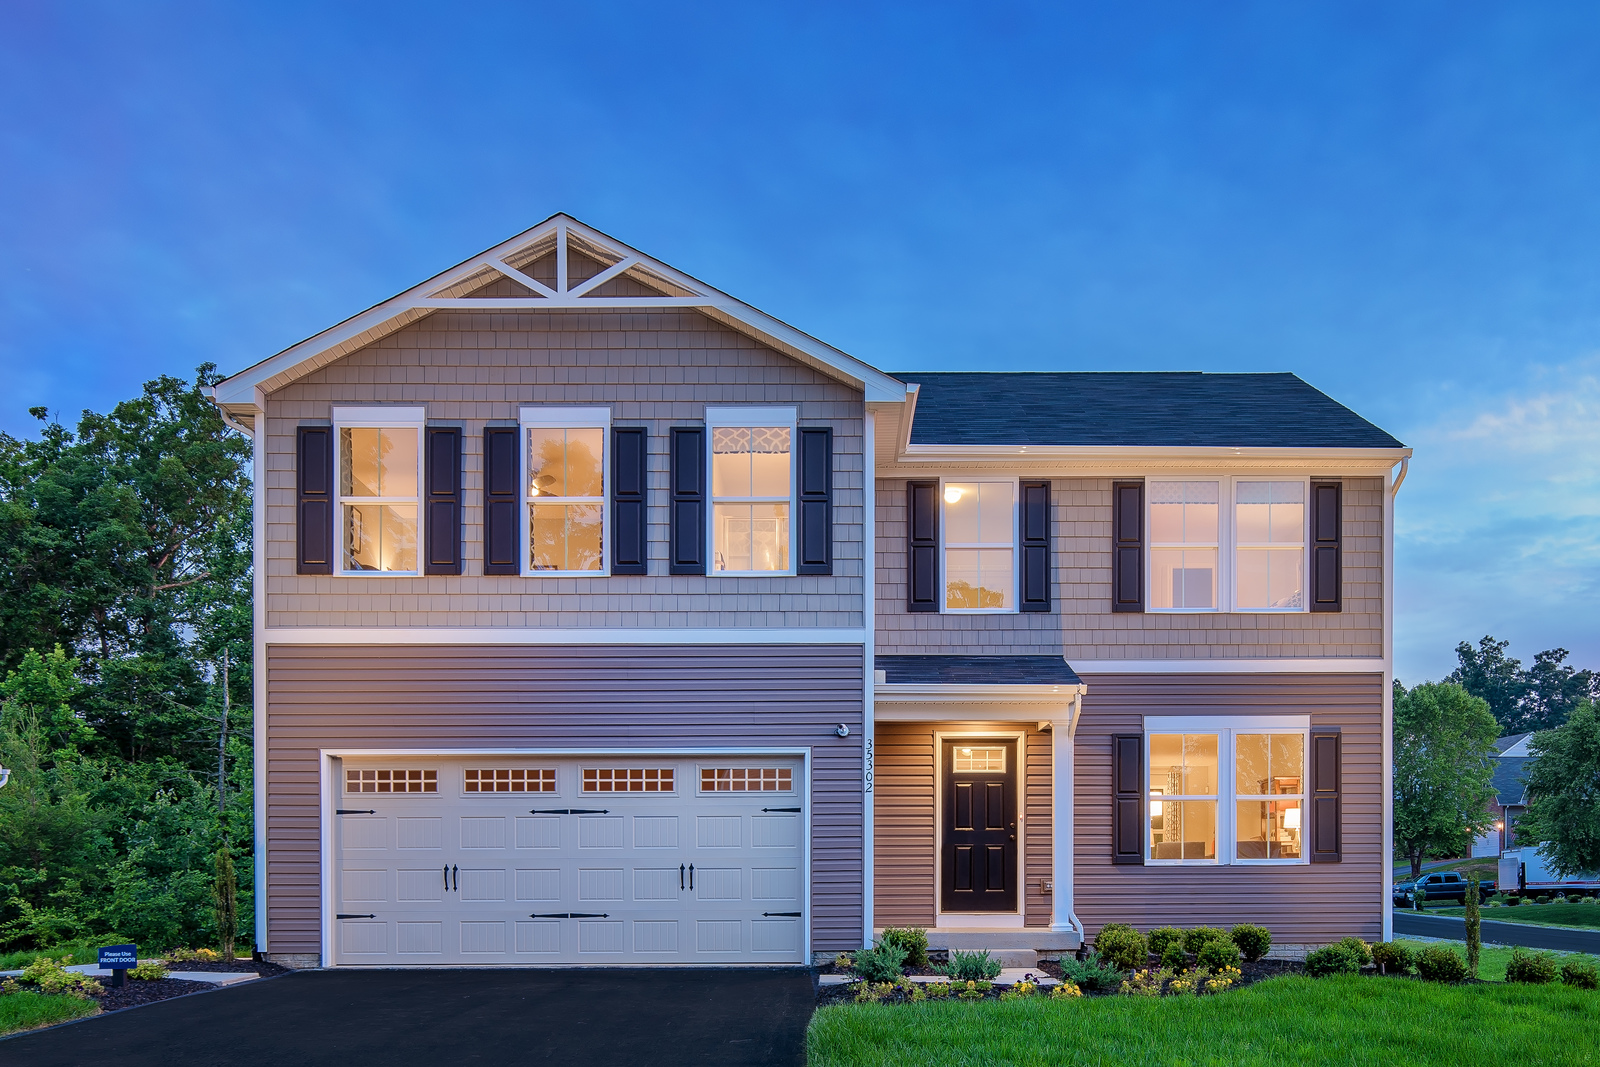 New homes for sale at stafford landing in stafford va for House landing